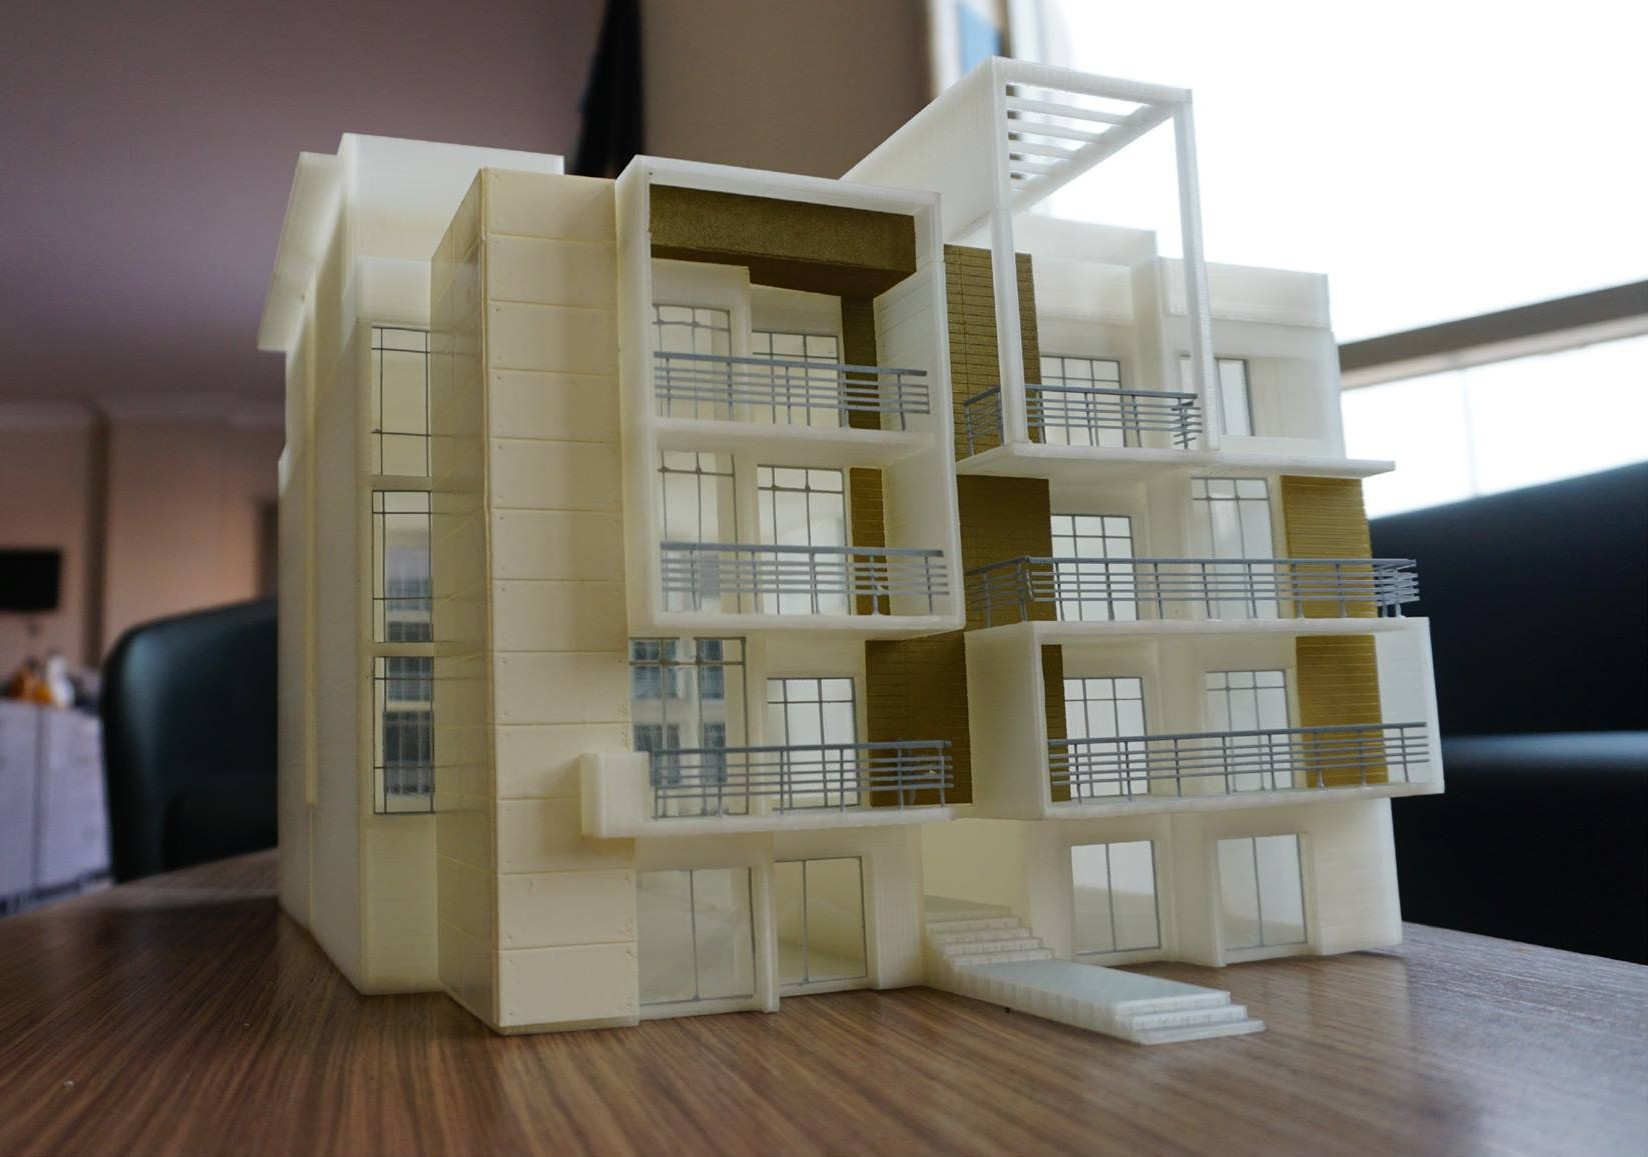 Detailed and Colored Architectural Model - AMTech 3D Printing Egypt